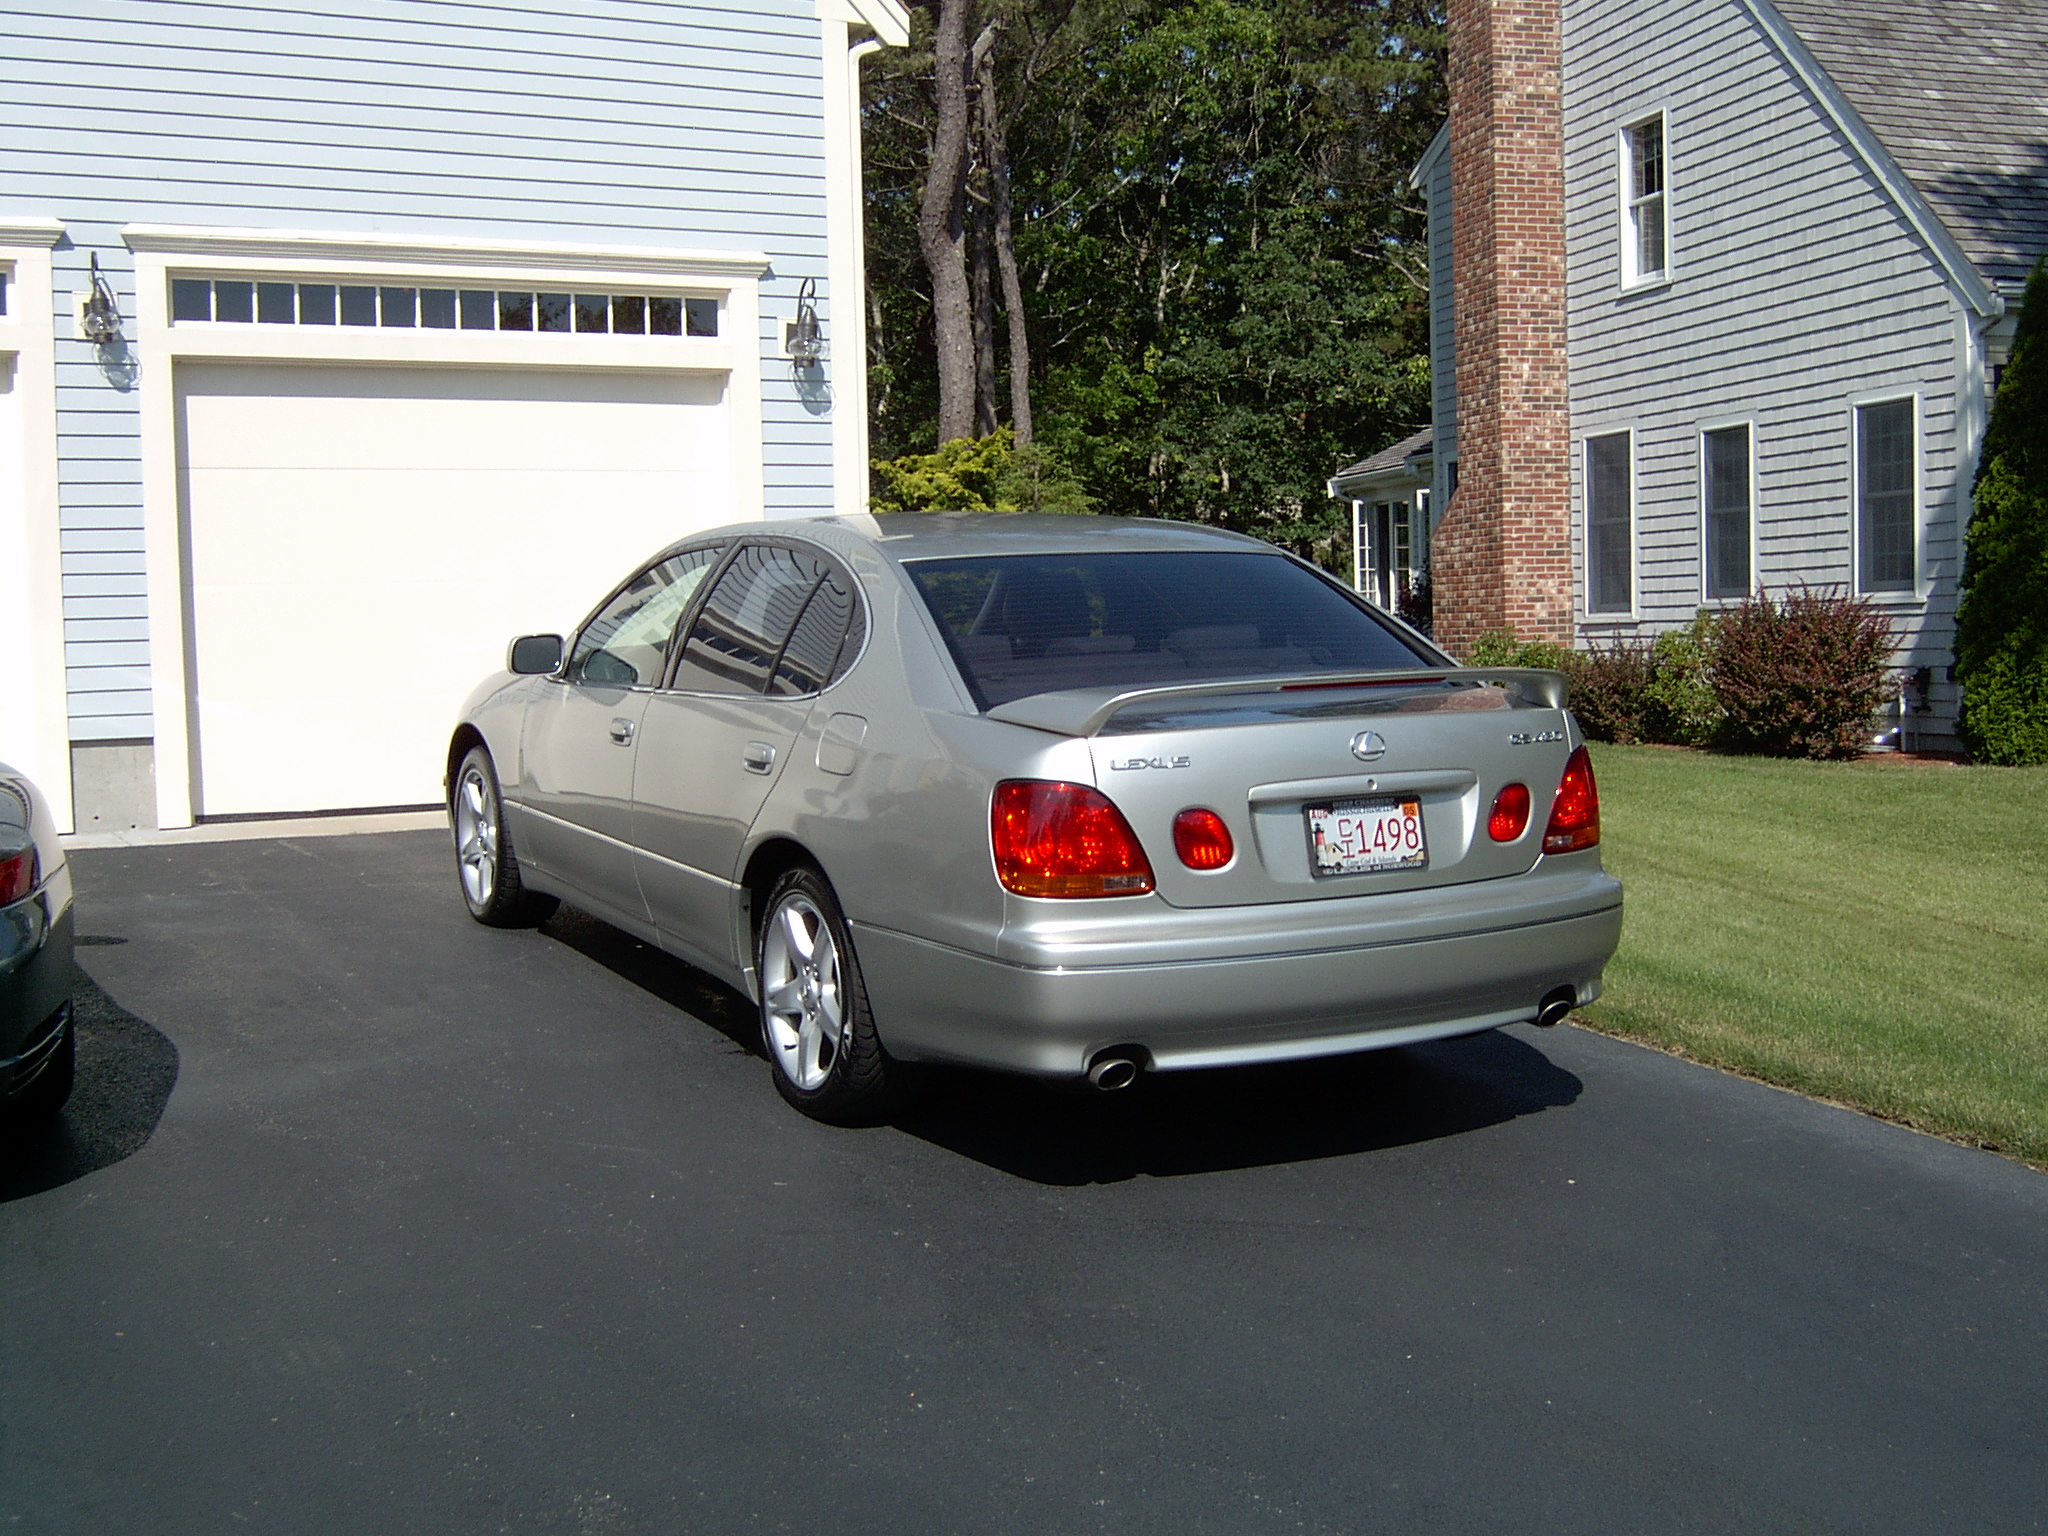 http://gomotors.net/photos/30/b9/lexus-gs430-barnstableyarmouth-massachusetts-used-car-new-_0fd05.jpg?i